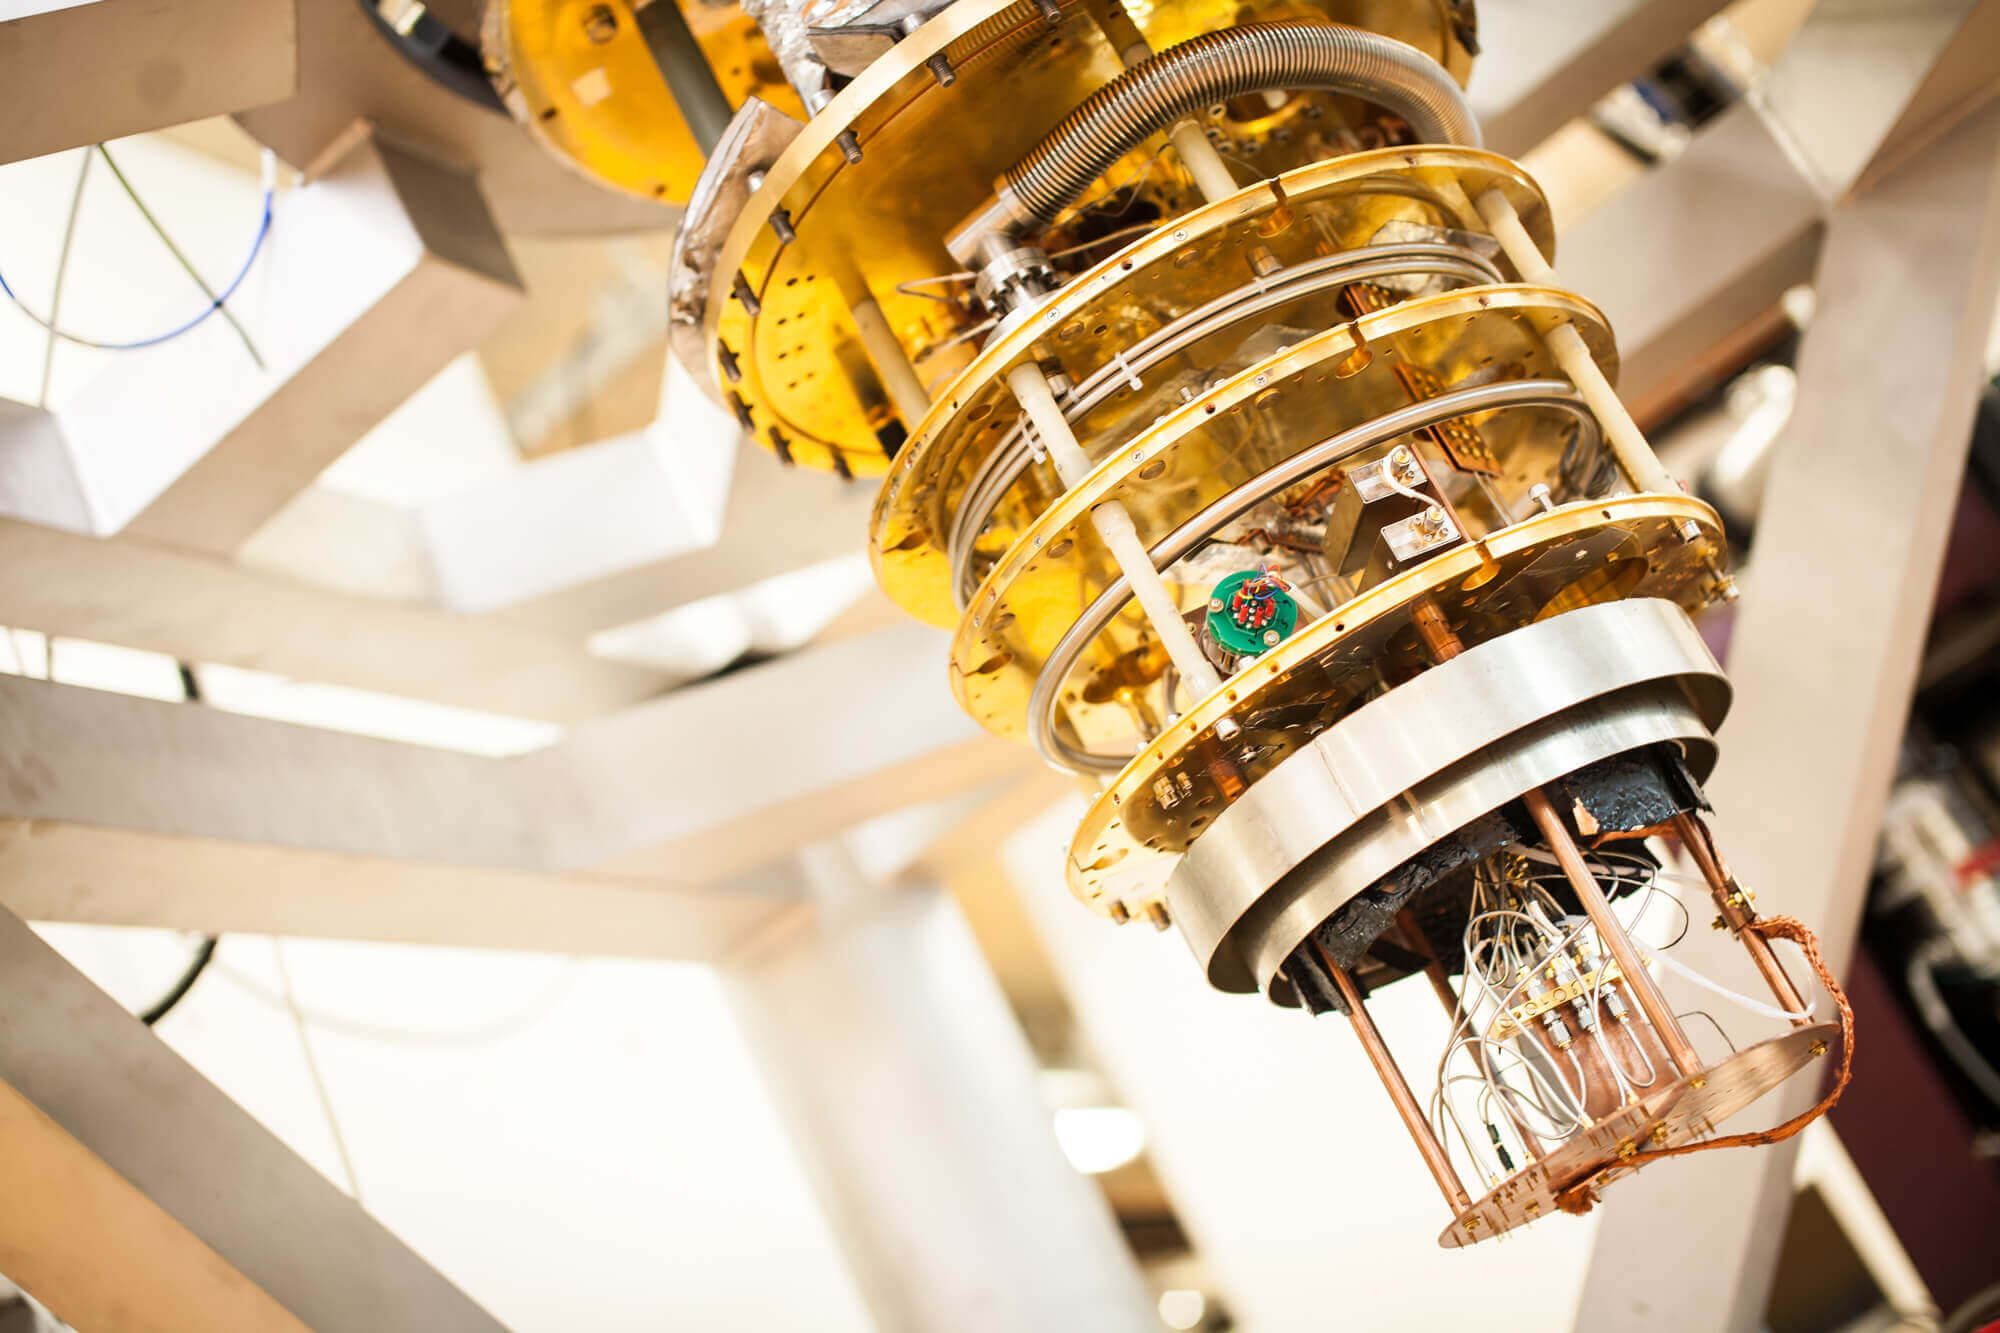 Scientists could use quantum data to accelerate some quantum computers